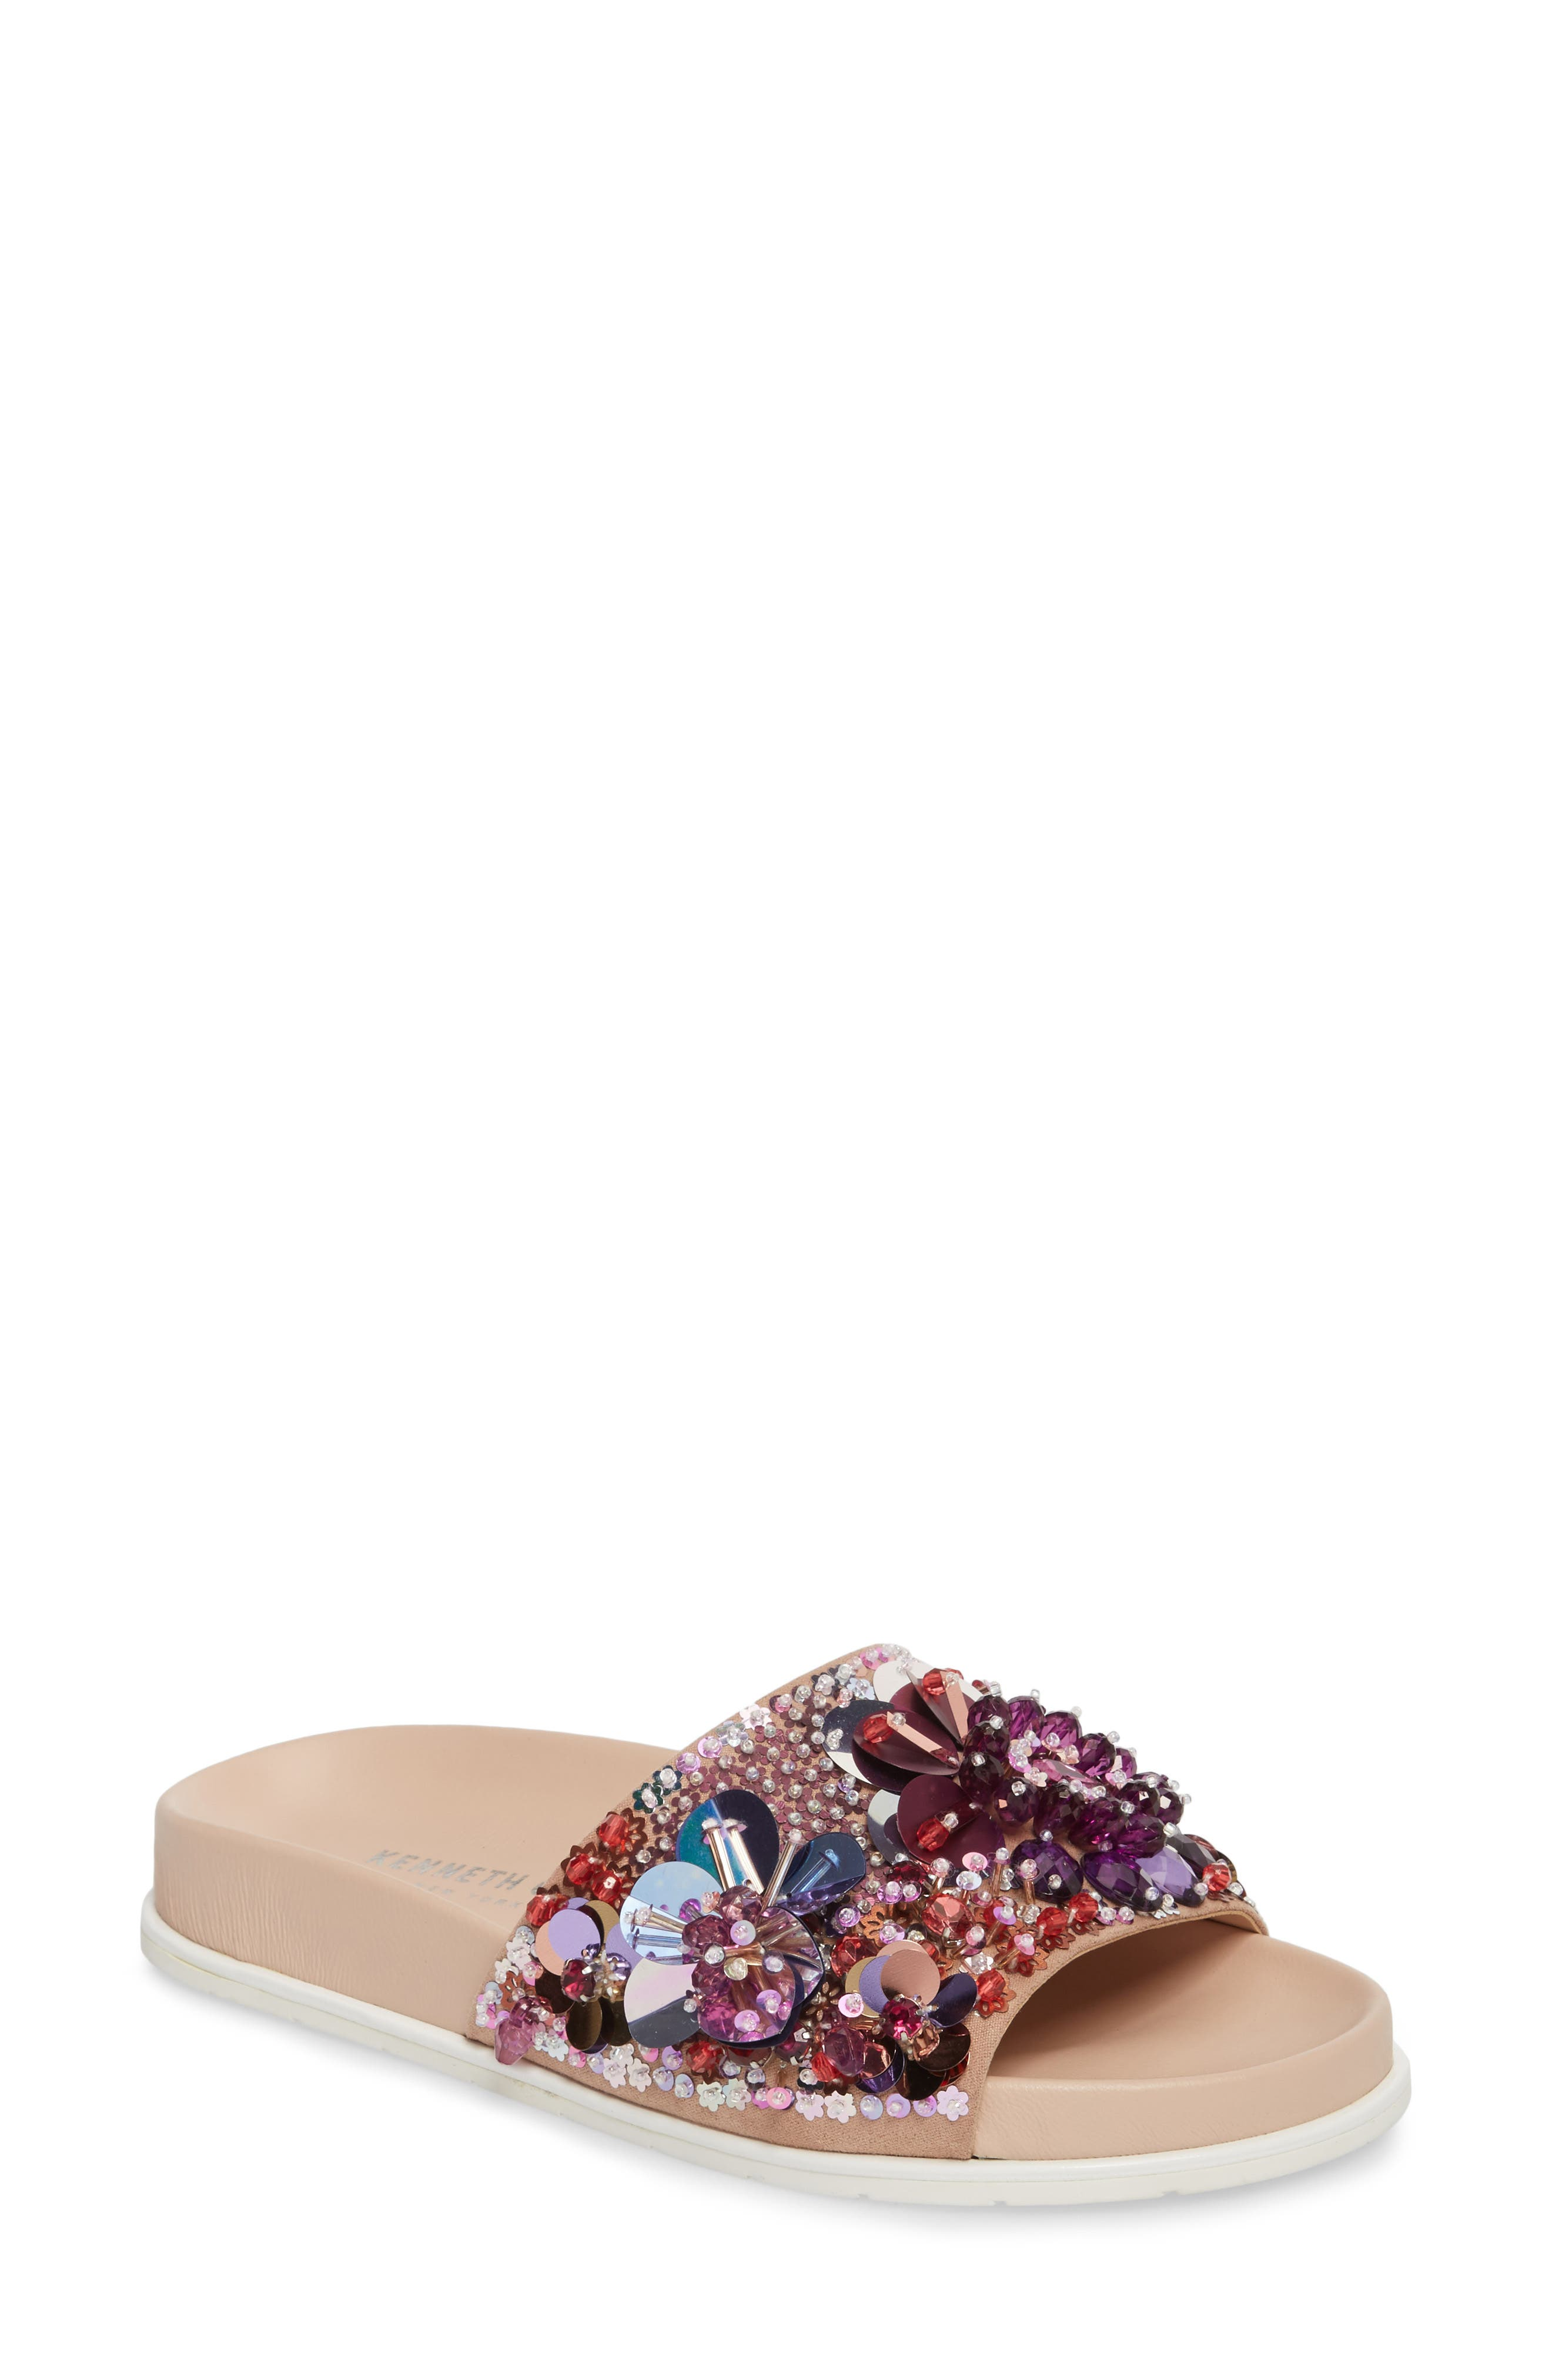 Main Image - Kenneth Cole New York Xenia Sequin Embellished Sandal (Women)